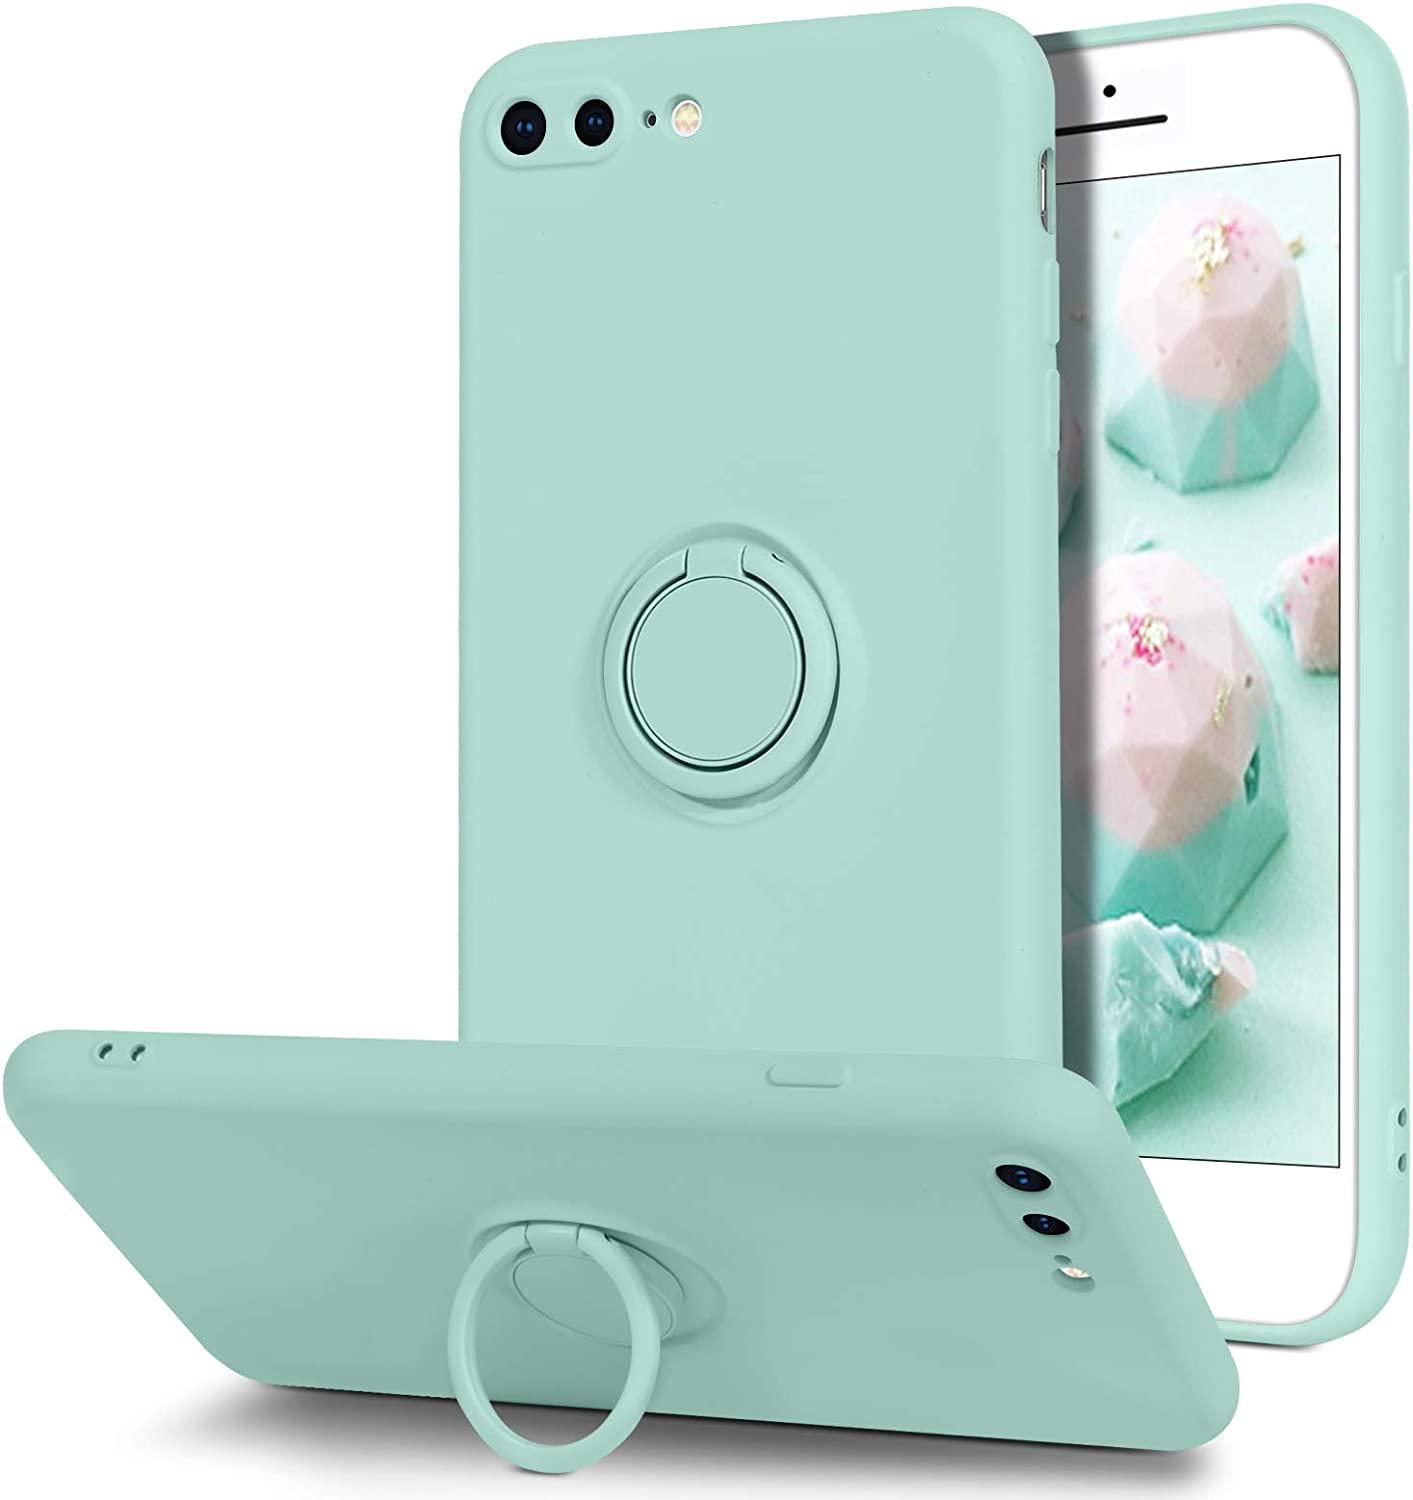 BENTOBEN iPhone 8 Plus Case, iPhone 7 Plus Case, Slim Silicone Soft Rubber with 360° Ring Holder Kickstand Car Mount Supported Protective Cases for iPhone 8 Plus/iPhone 7 Plus 5.5 Inch, Mint Green